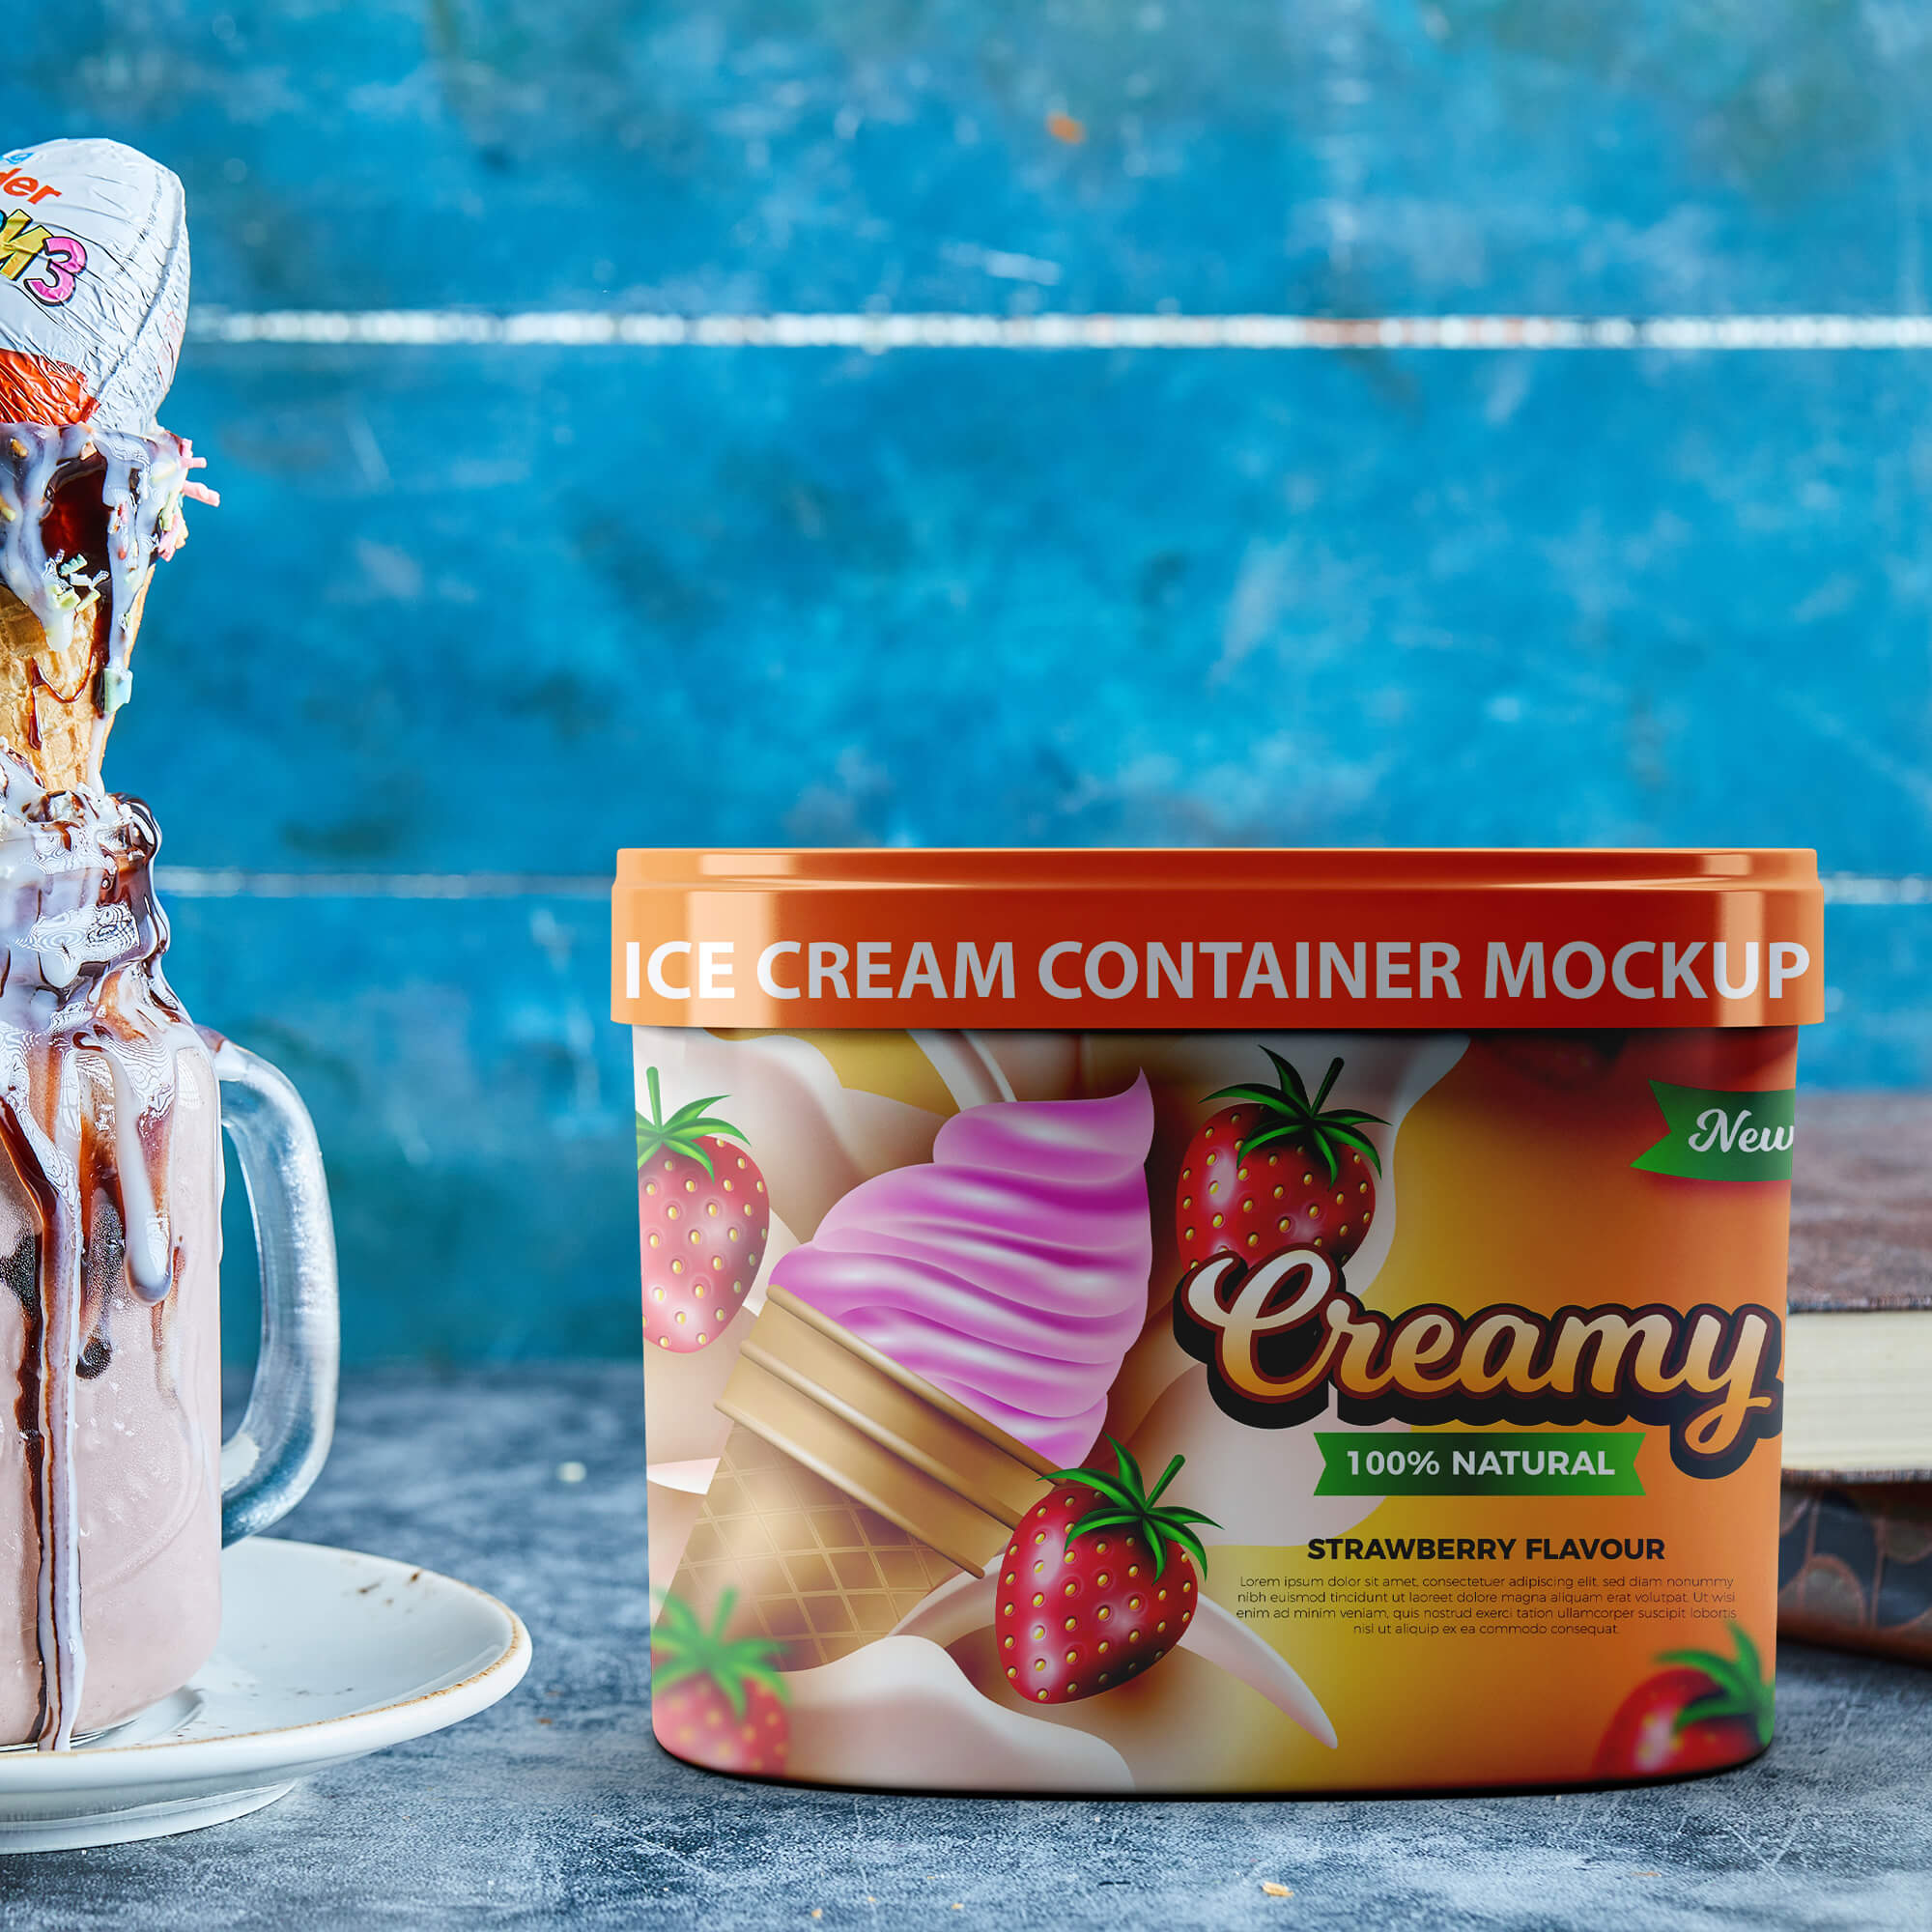 Free Ice Cream Container Mockup PSD Template